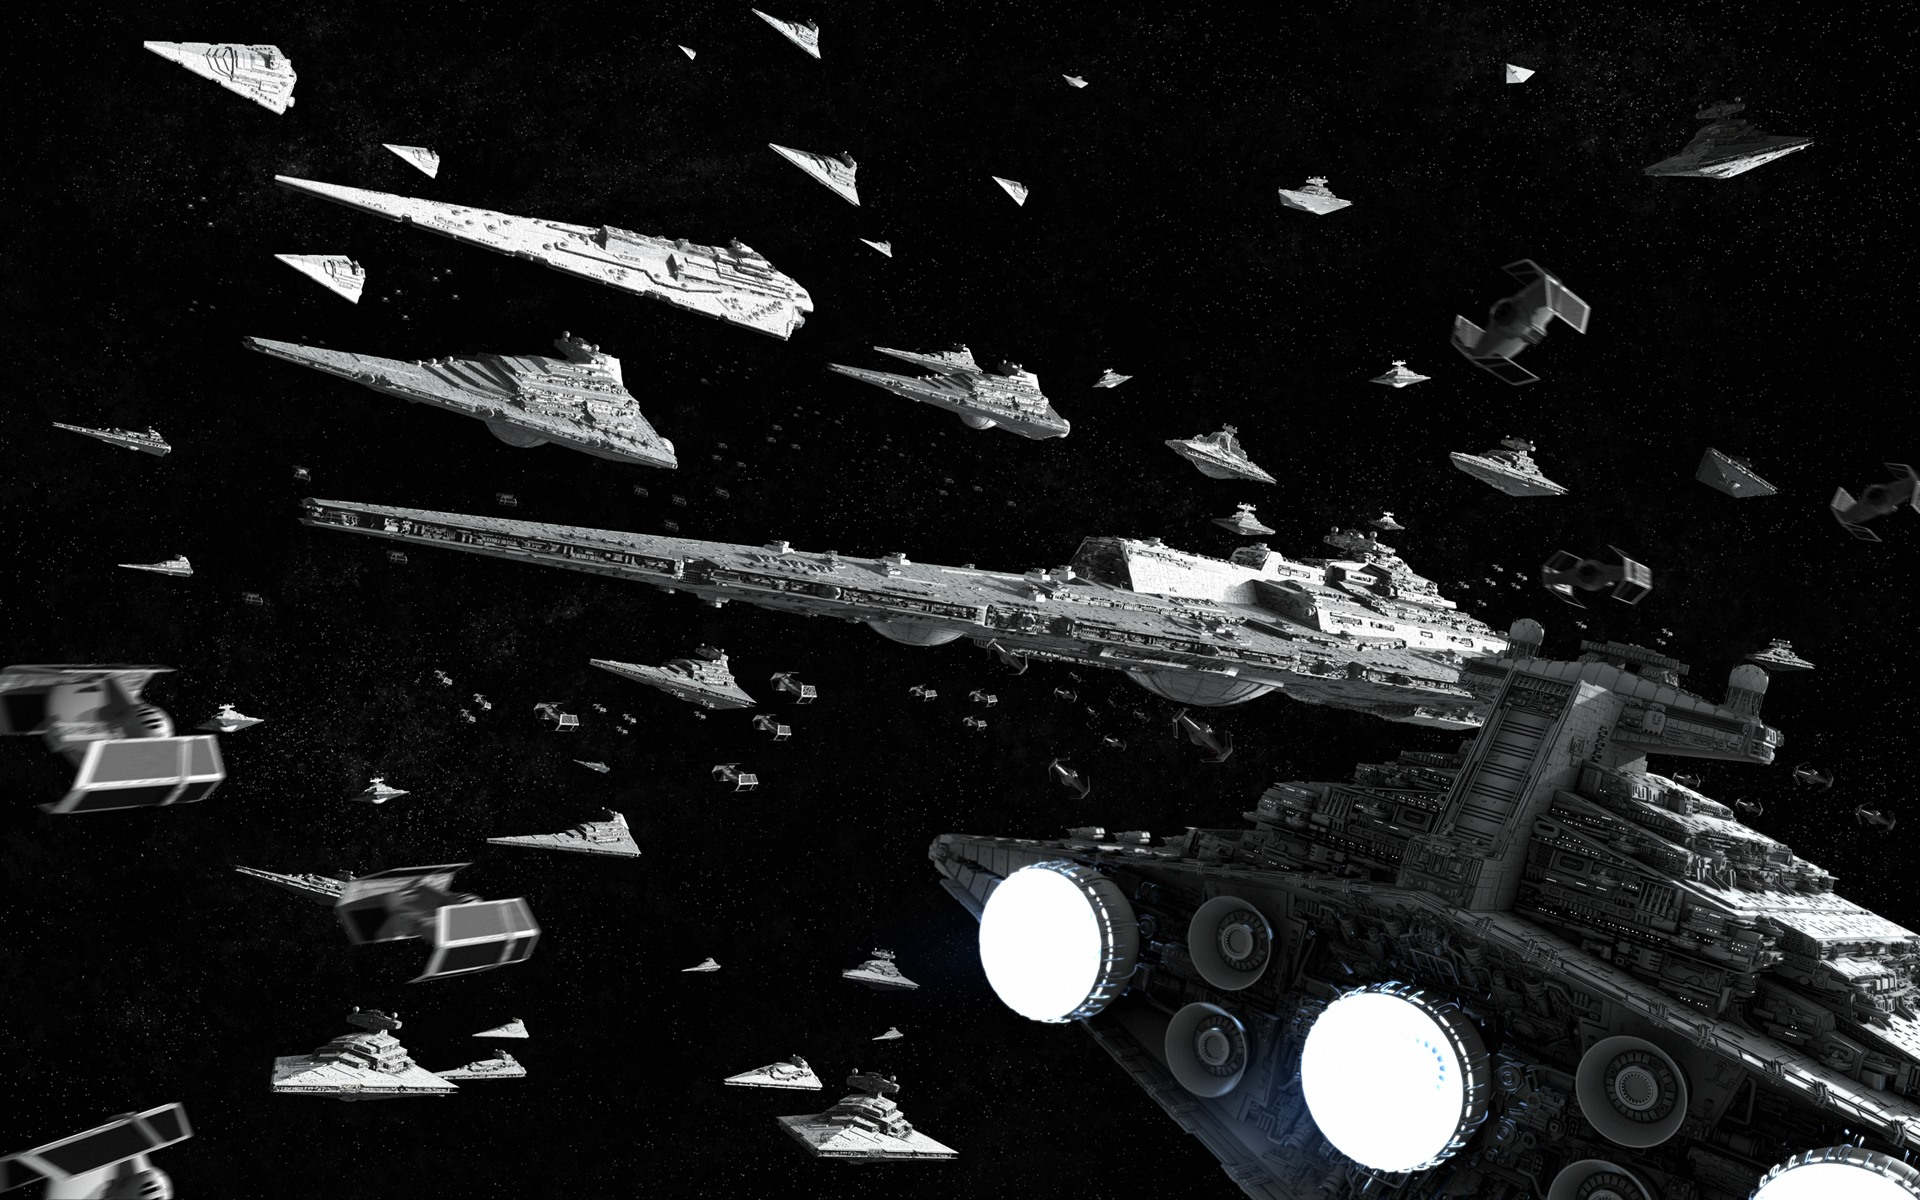 star wars search background wallpaper images cool fleet 1920x1200